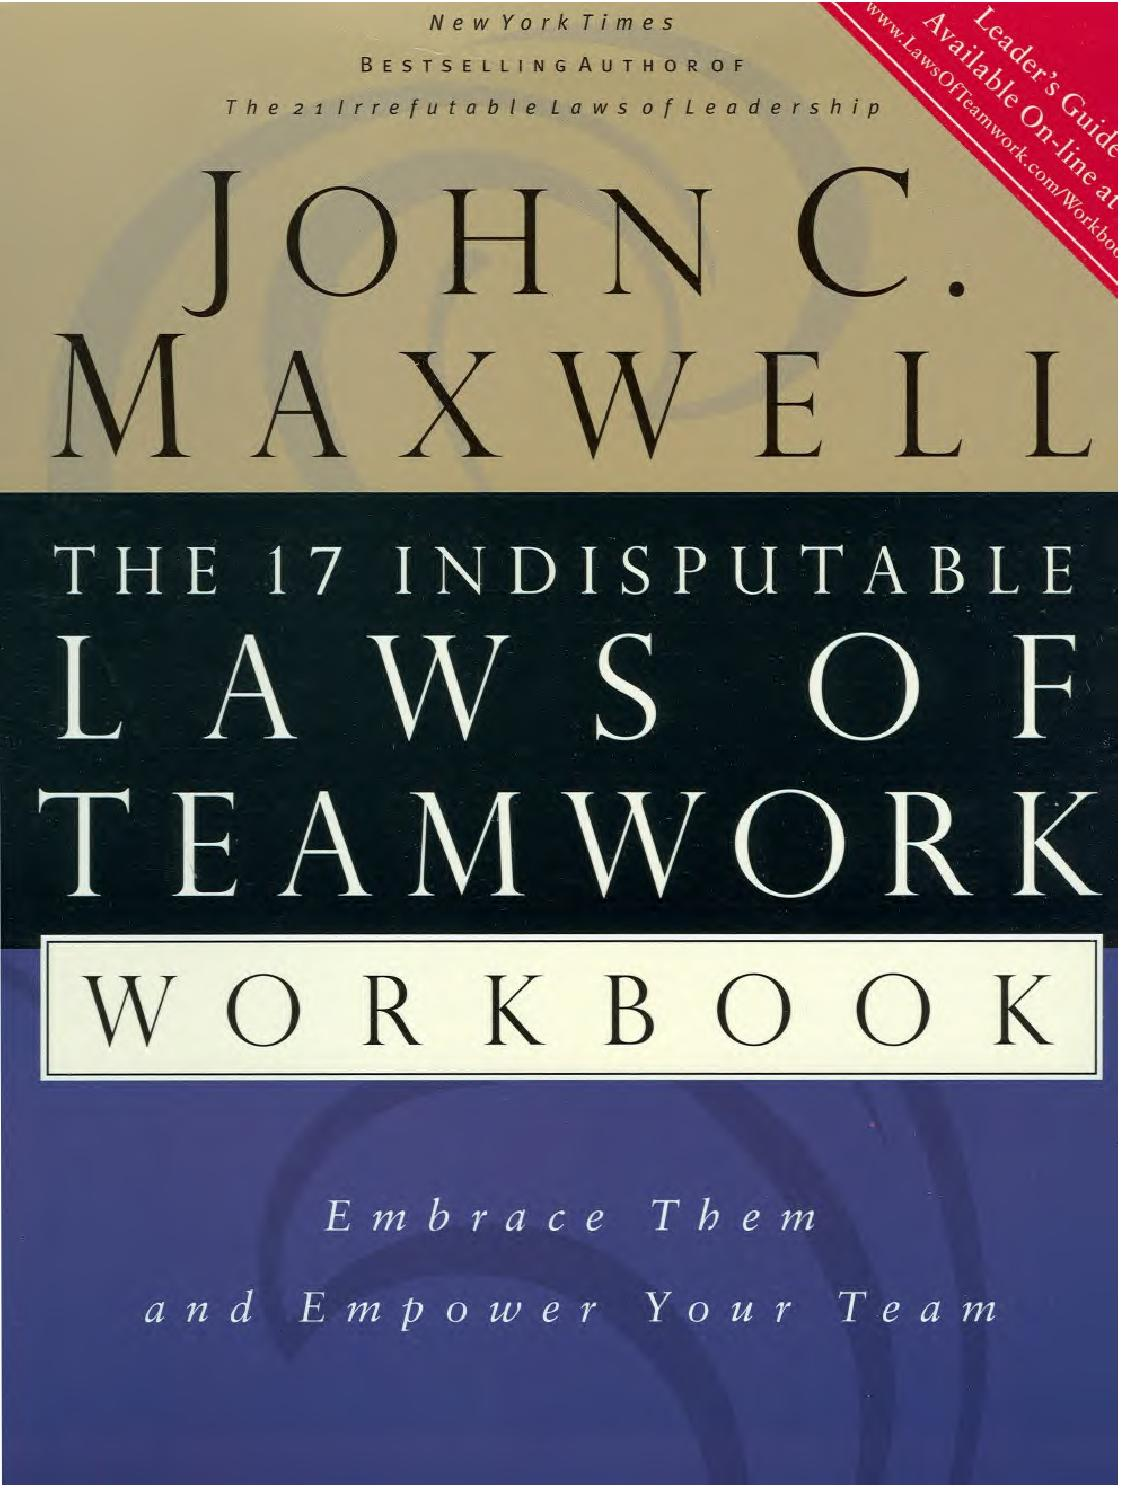 john maxwell laws of teamwork workbook by revati beyond softs john maxwell 17 laws of teamwork workbook by revati beyond softs issuu